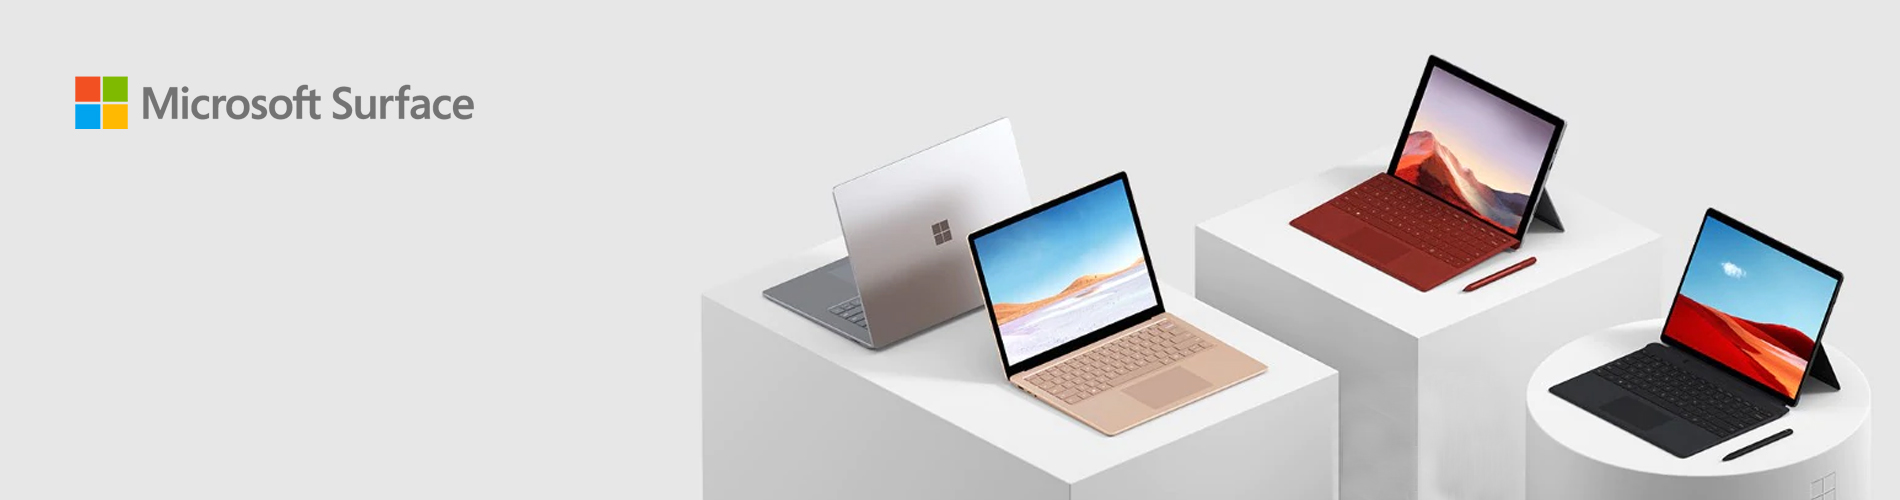 Microsoft Surface Landing Page New Update  Tile 01